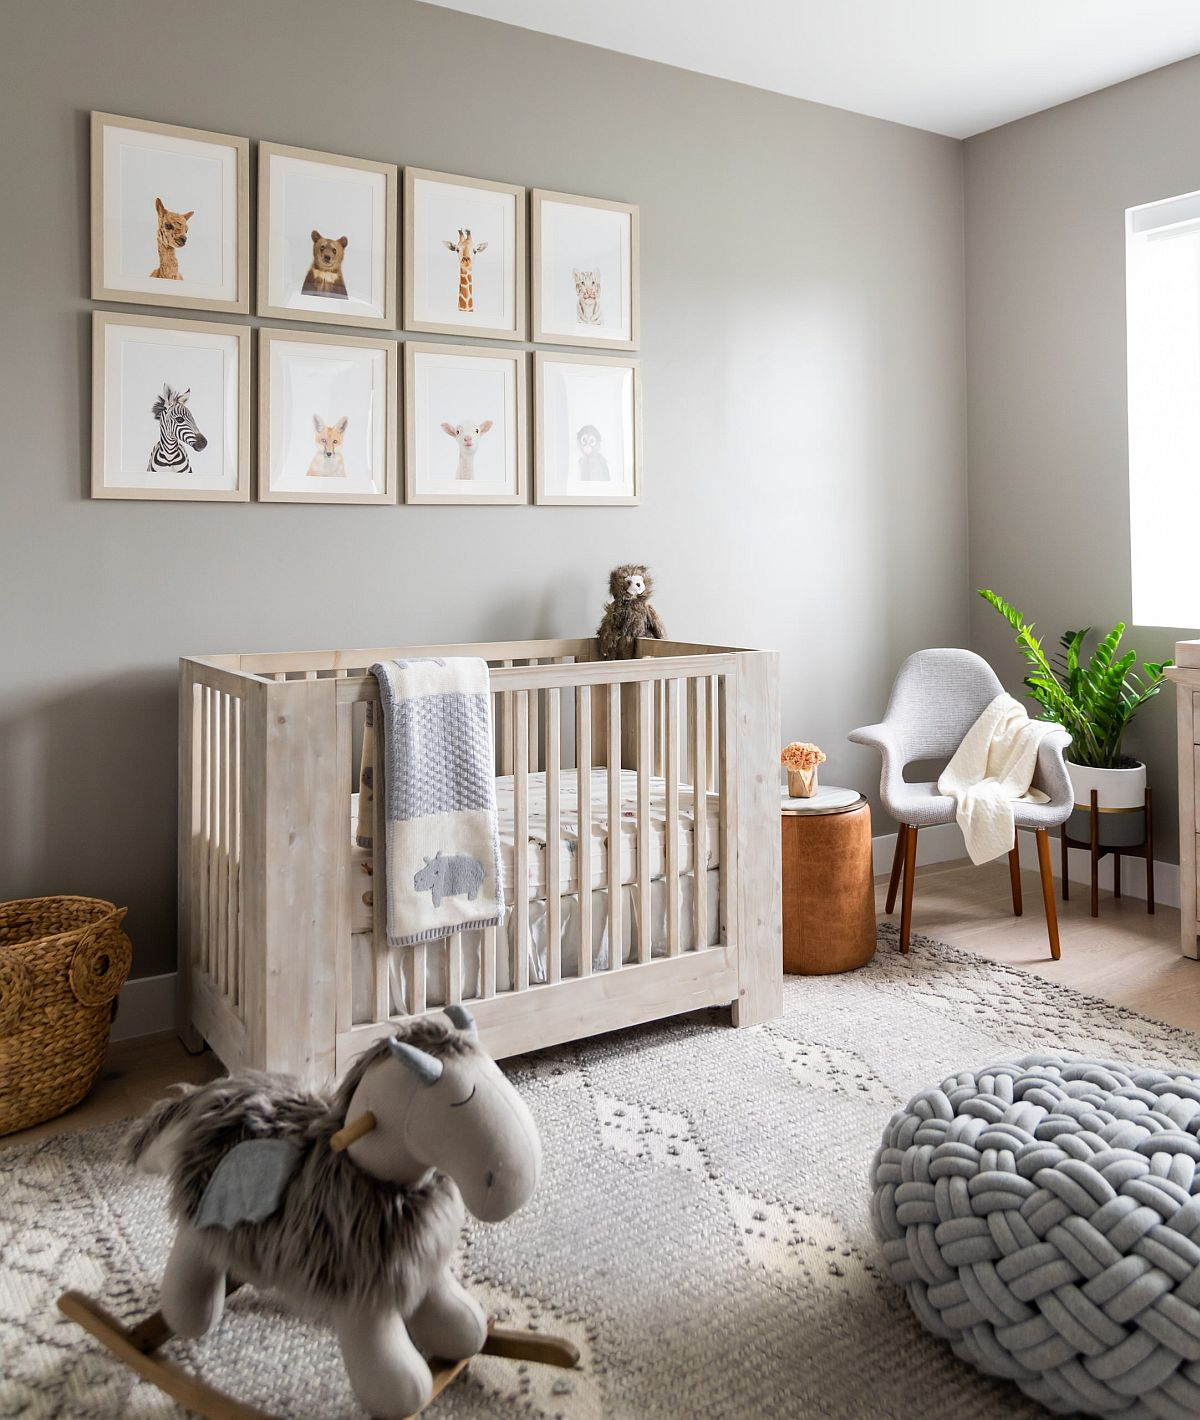 Exquisite modern coastal nursery in gray with refined decor